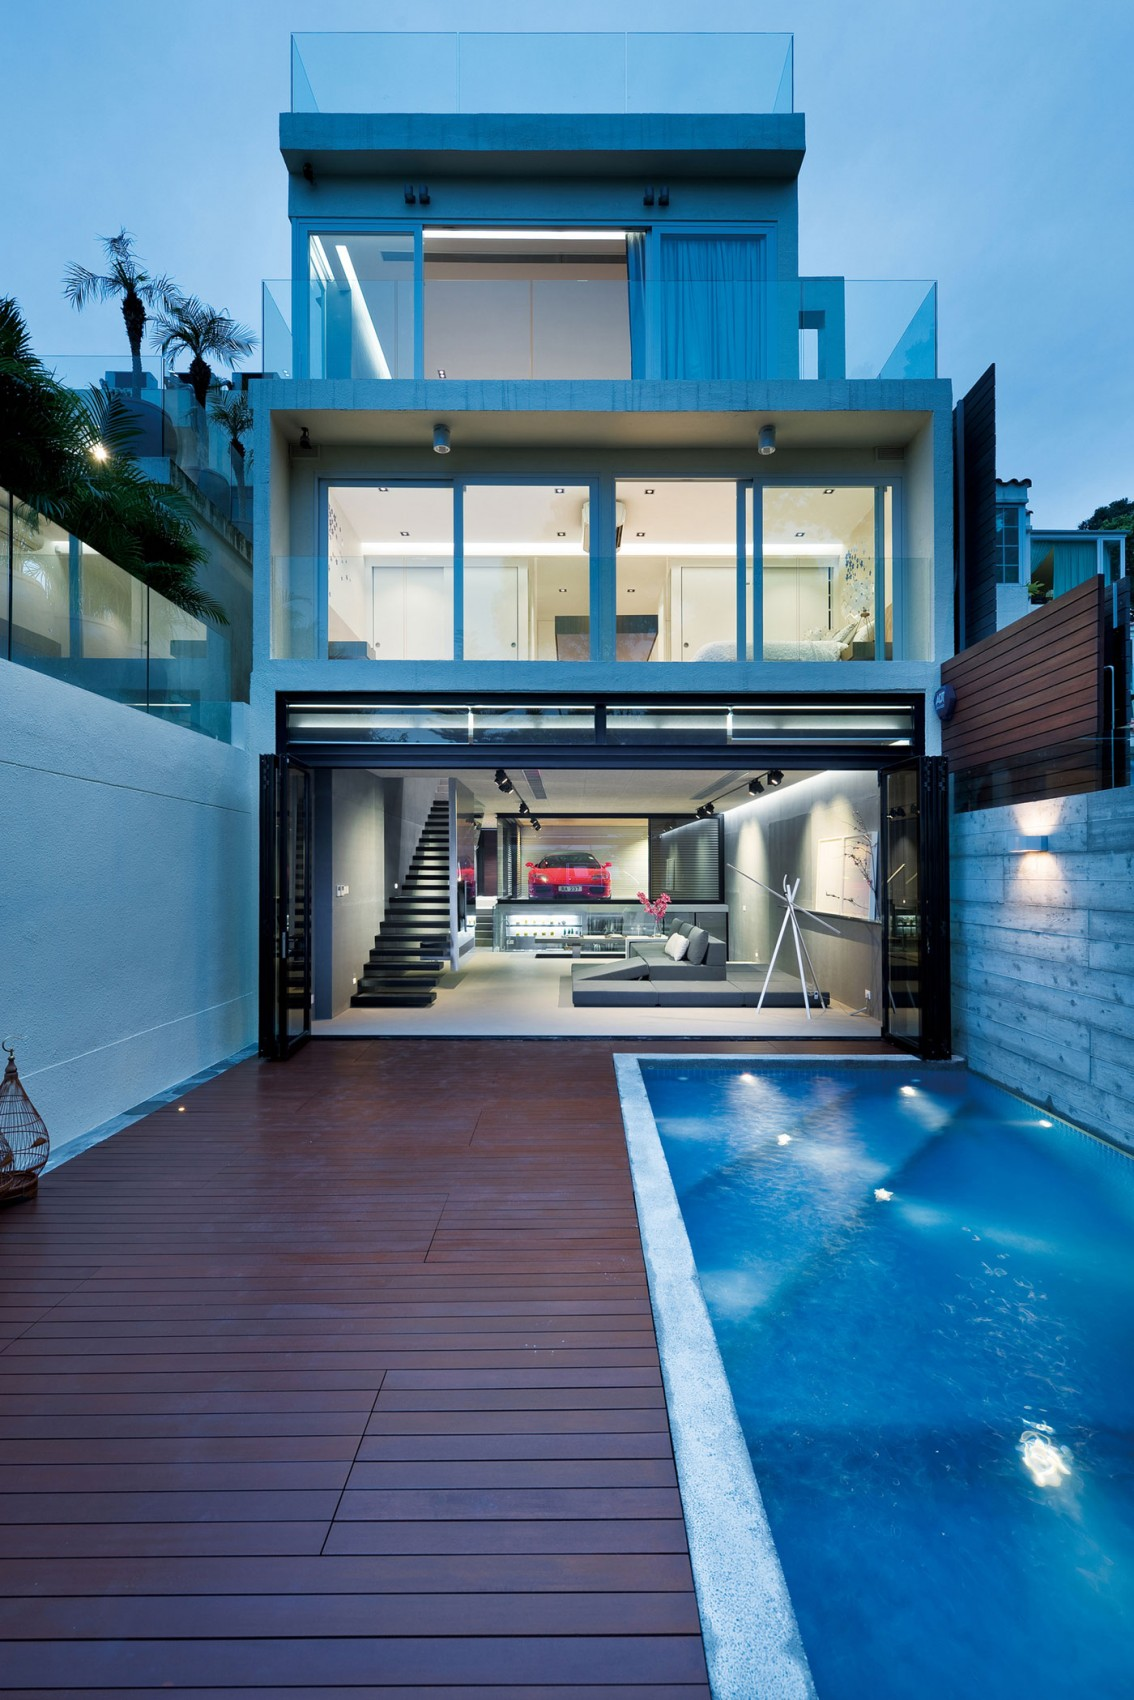 Unconventional Hong Kong House Makes The Garage Part Of The Living Space